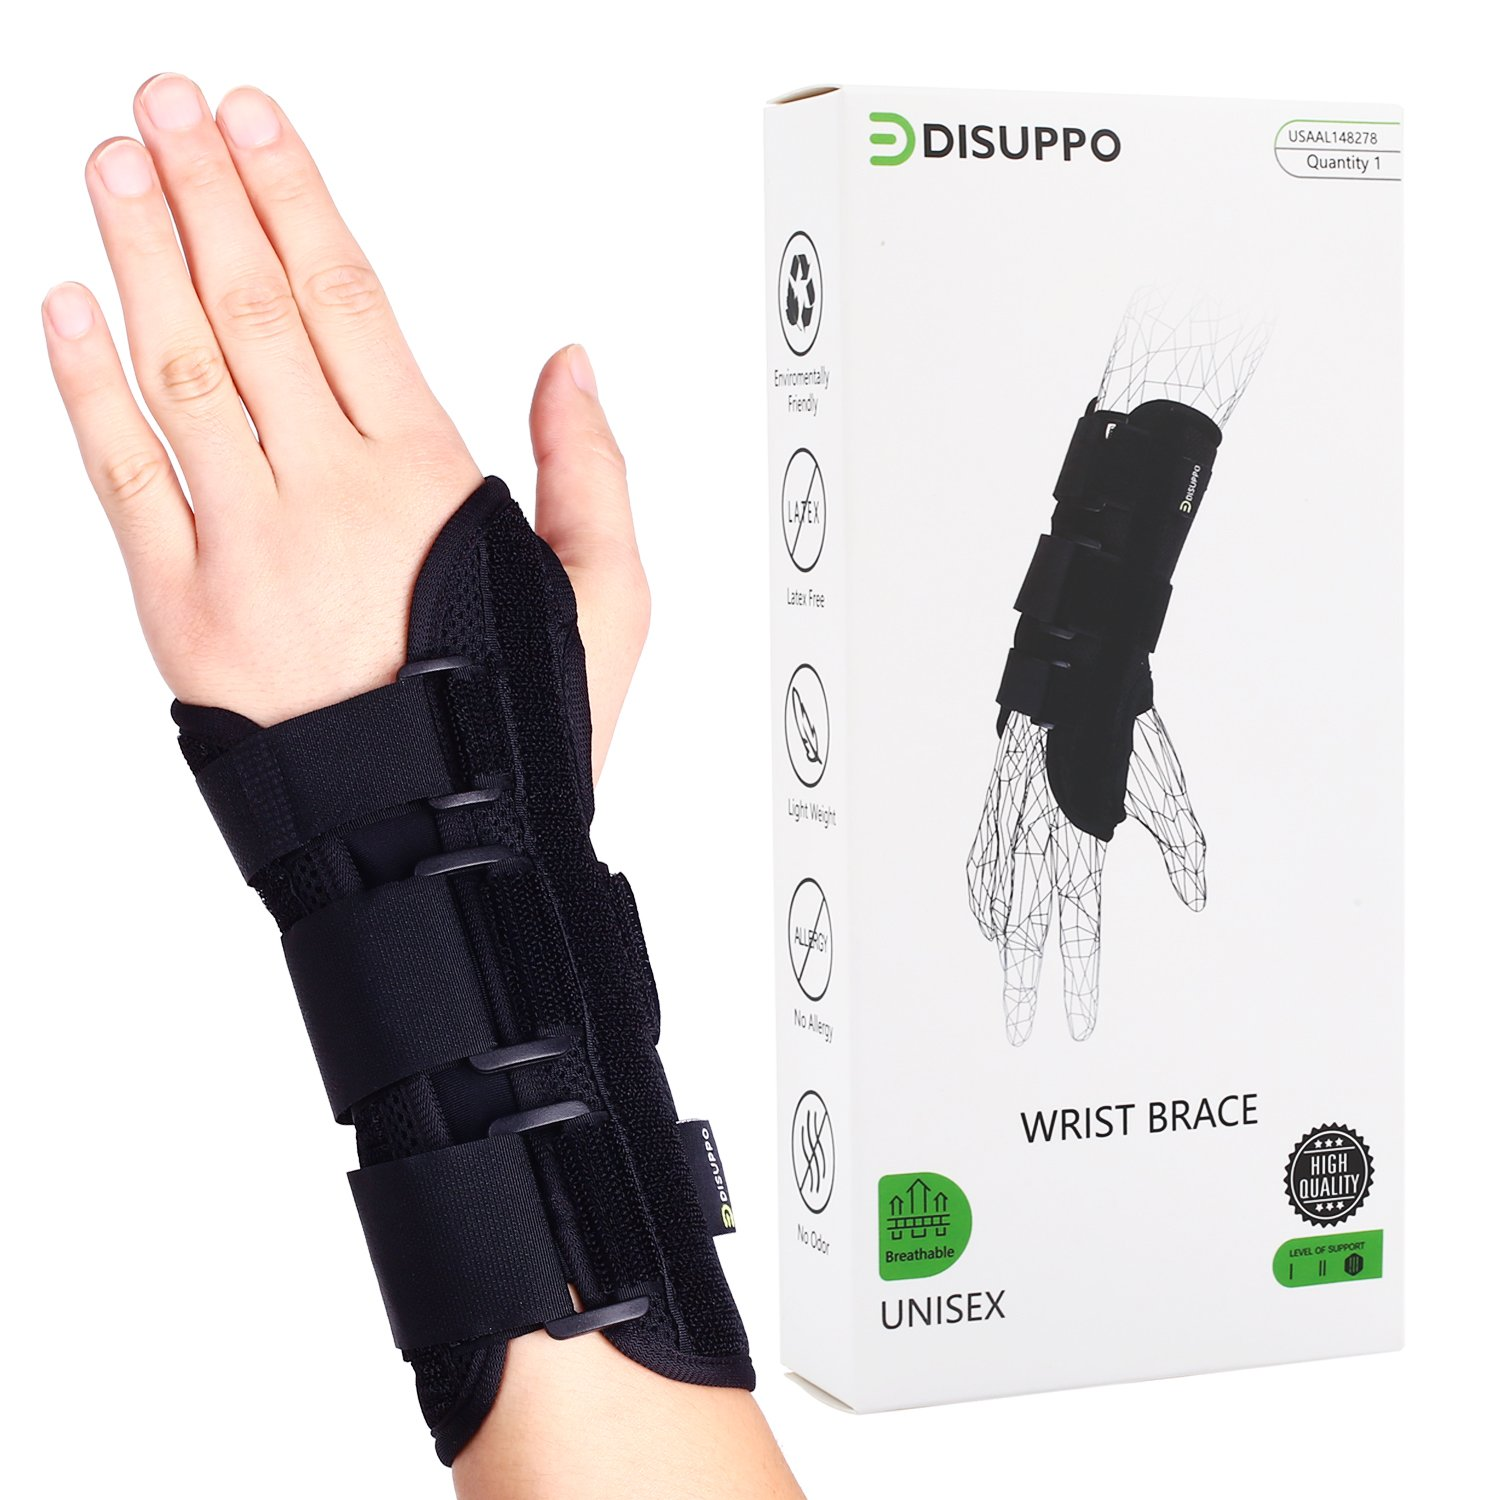 DISUPPO Wrist Brace with Nighttime Removable Splint for Hand - Relief for RSI, Cubital Tunnel, Tendonitis, Arthritis, Wrist Sprains. Support Recovery Wrist Pain & Sports Injuries - Wrist Splint